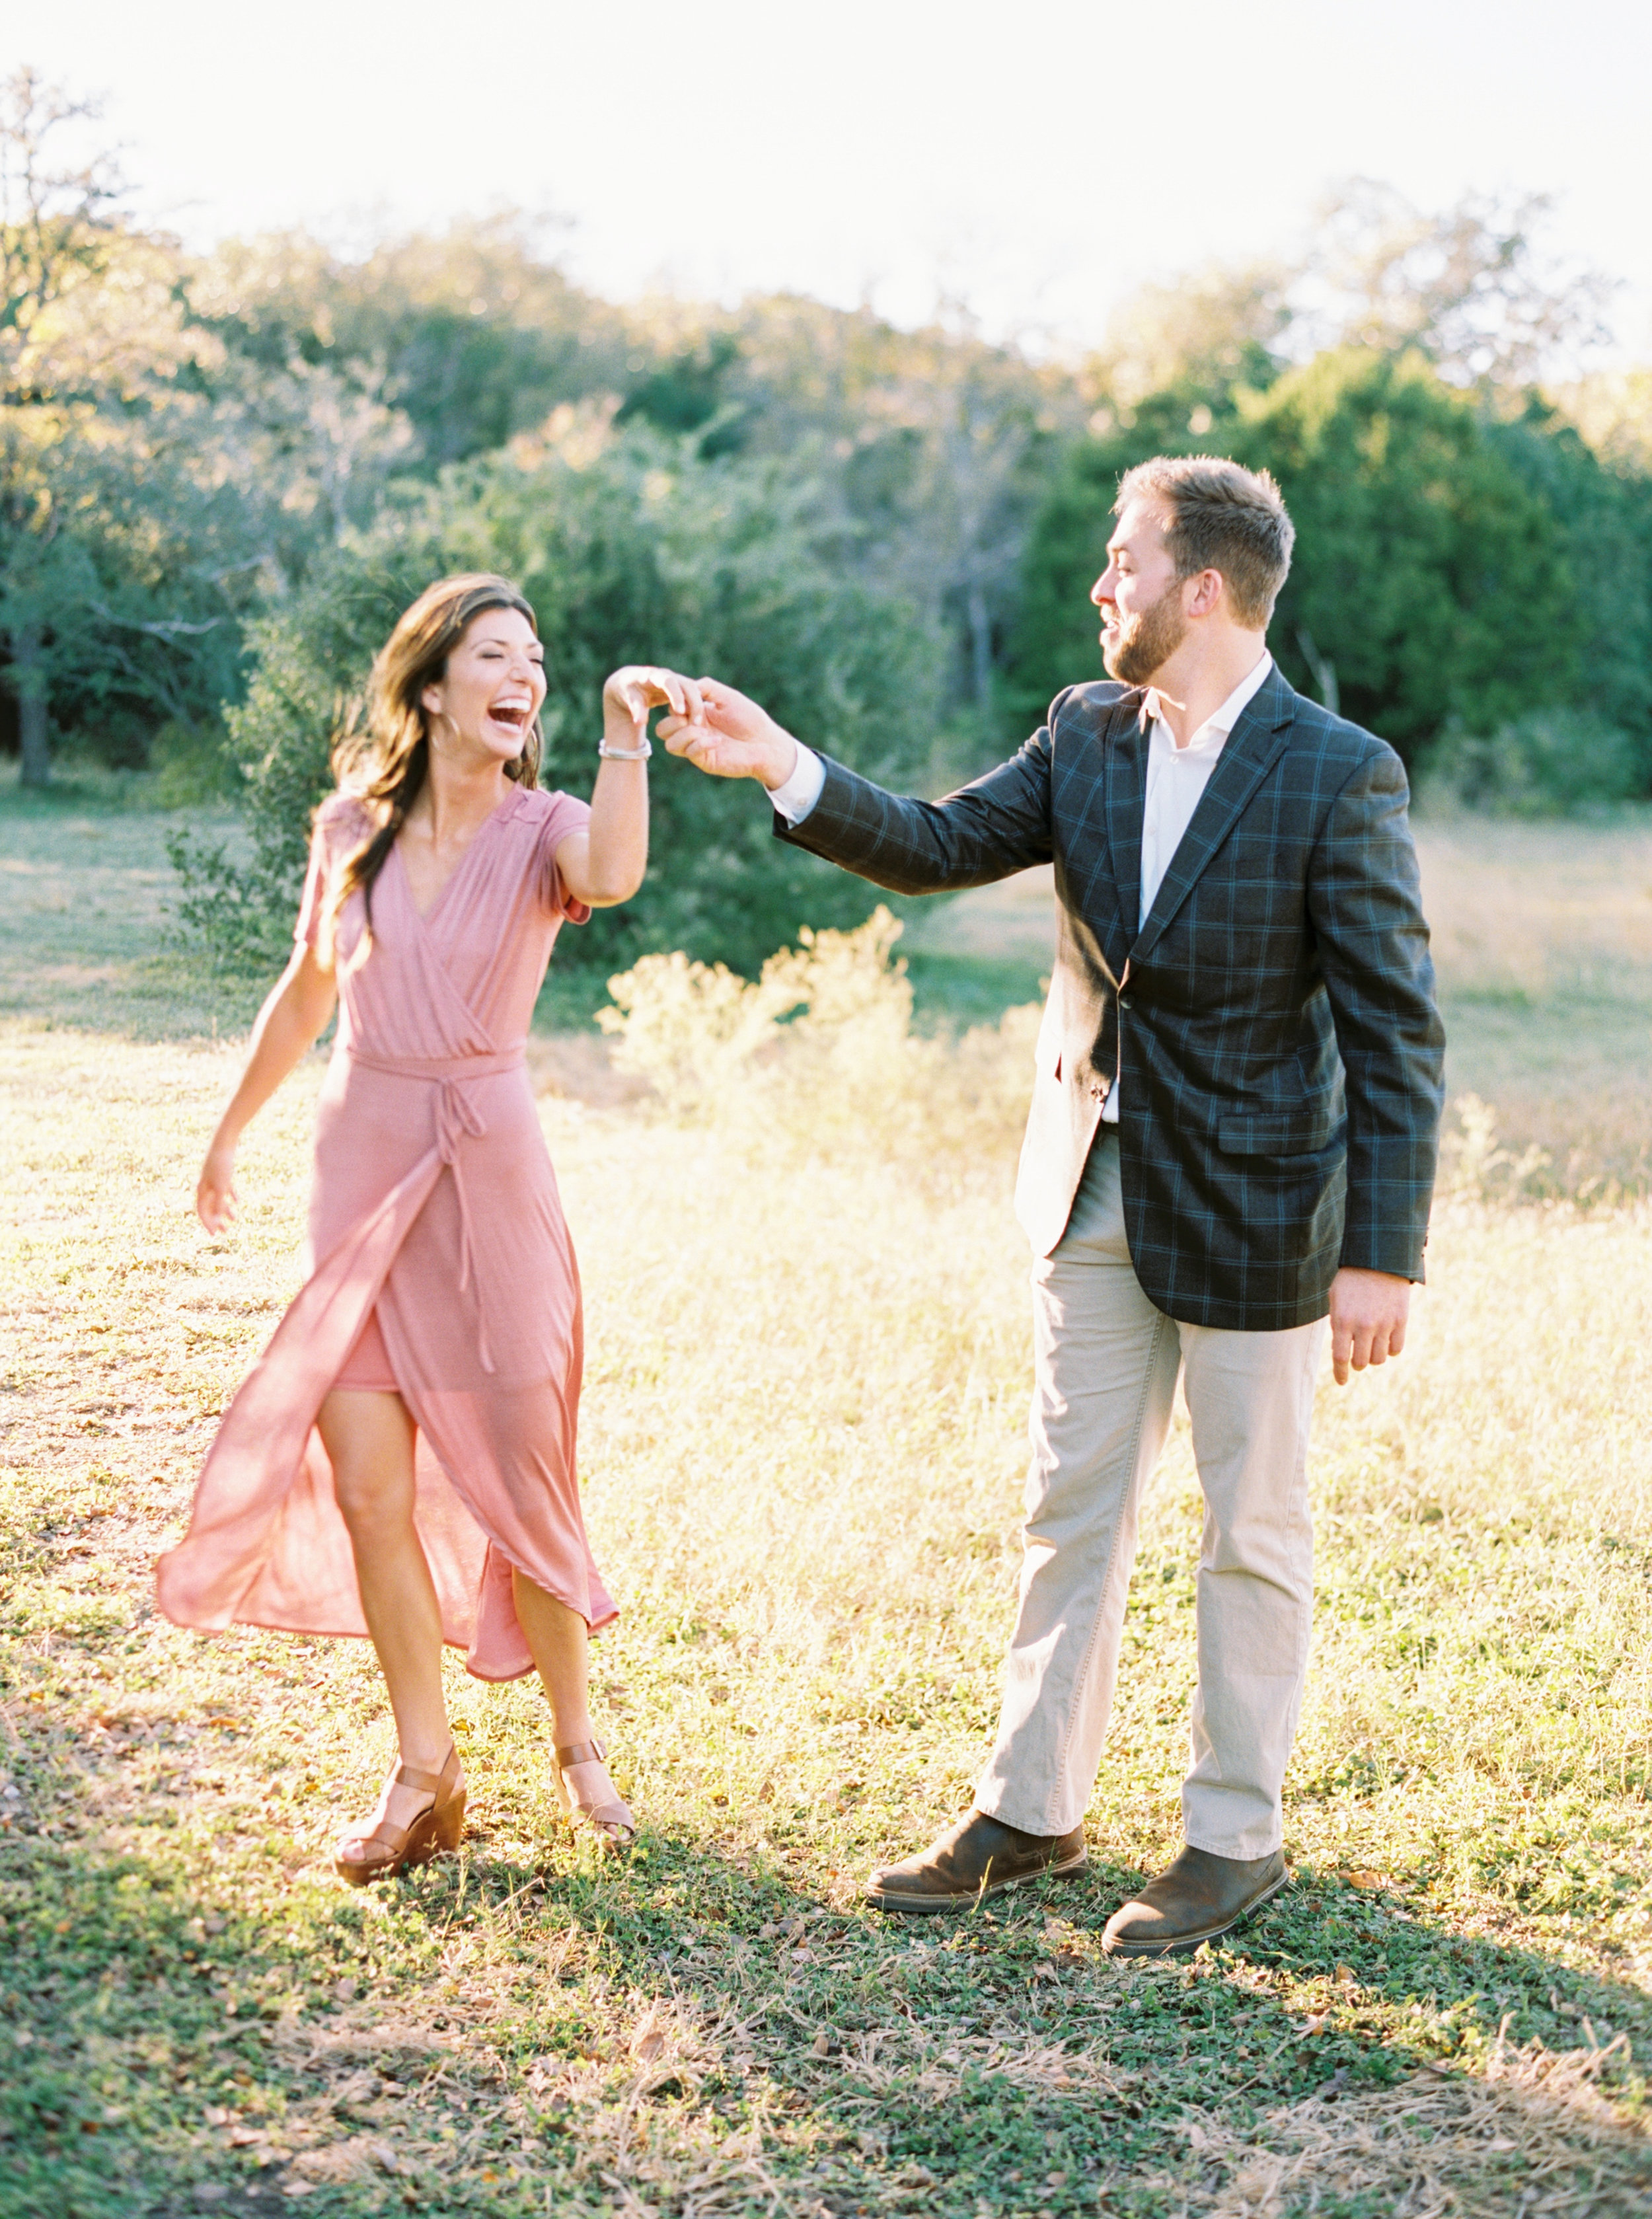 Engagement Session Outfits-142.jpg